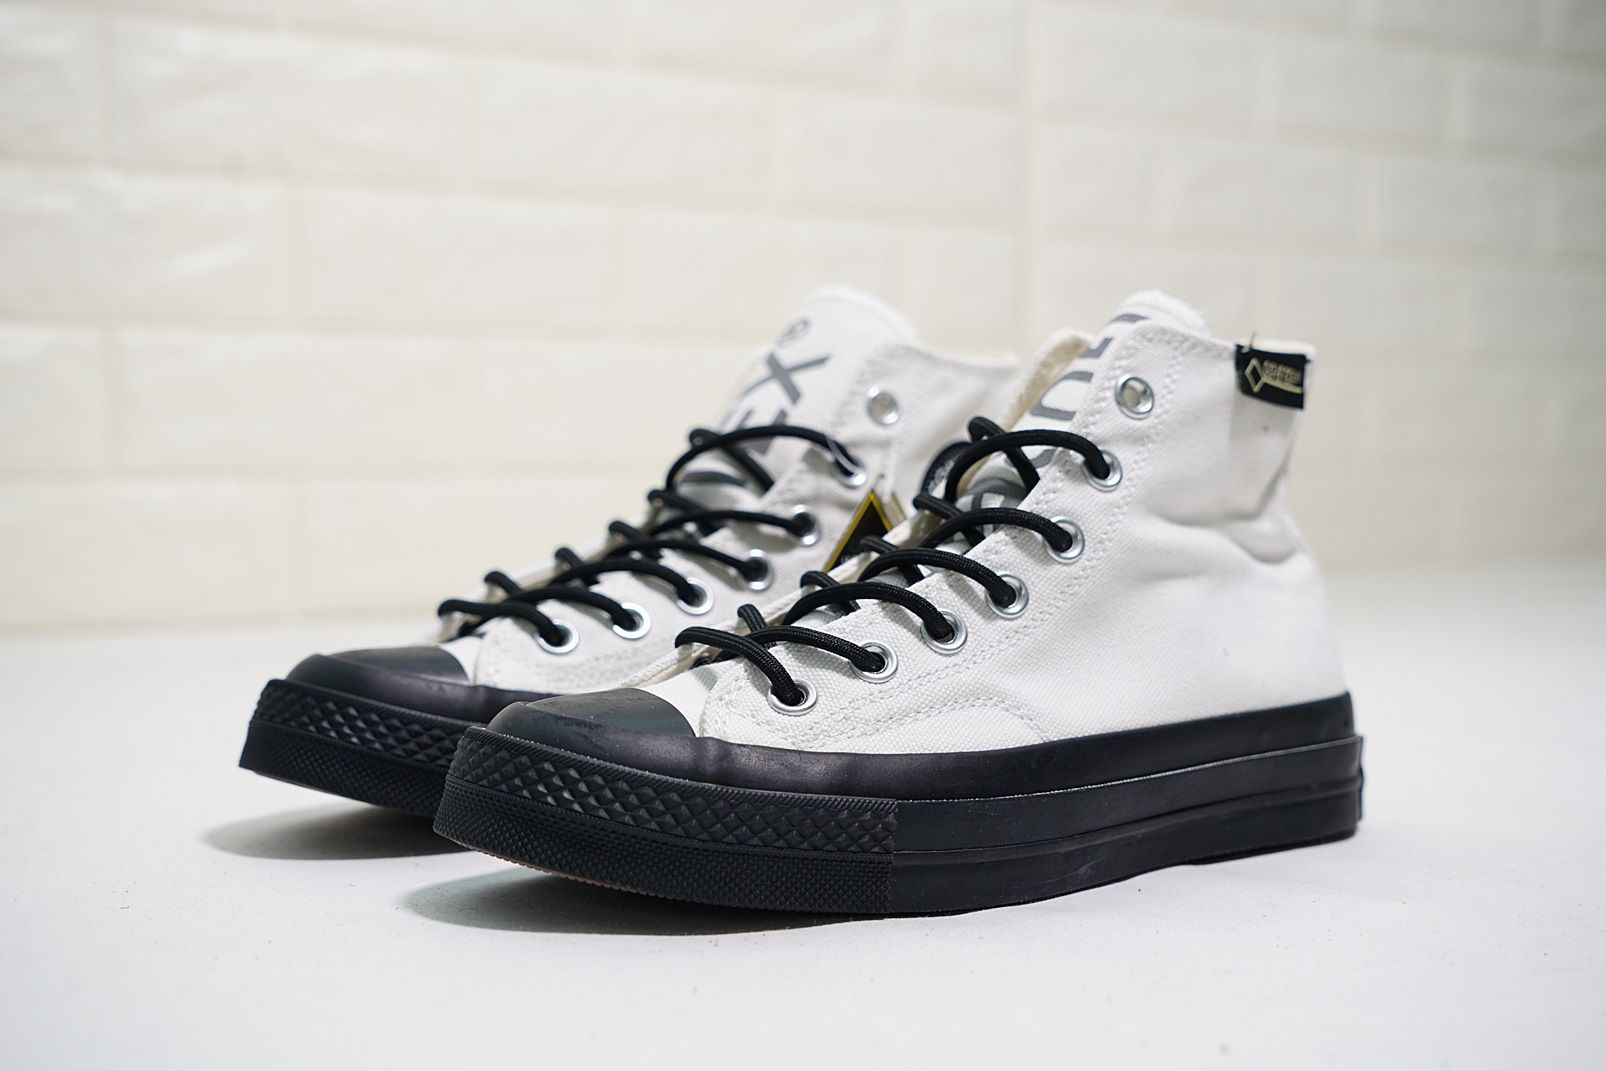 6f8585d84d7 CONVERSE CHUCK TAYLOR ALL STAR GORE TEX 70S HIGH 162349C | CONVERSE ...